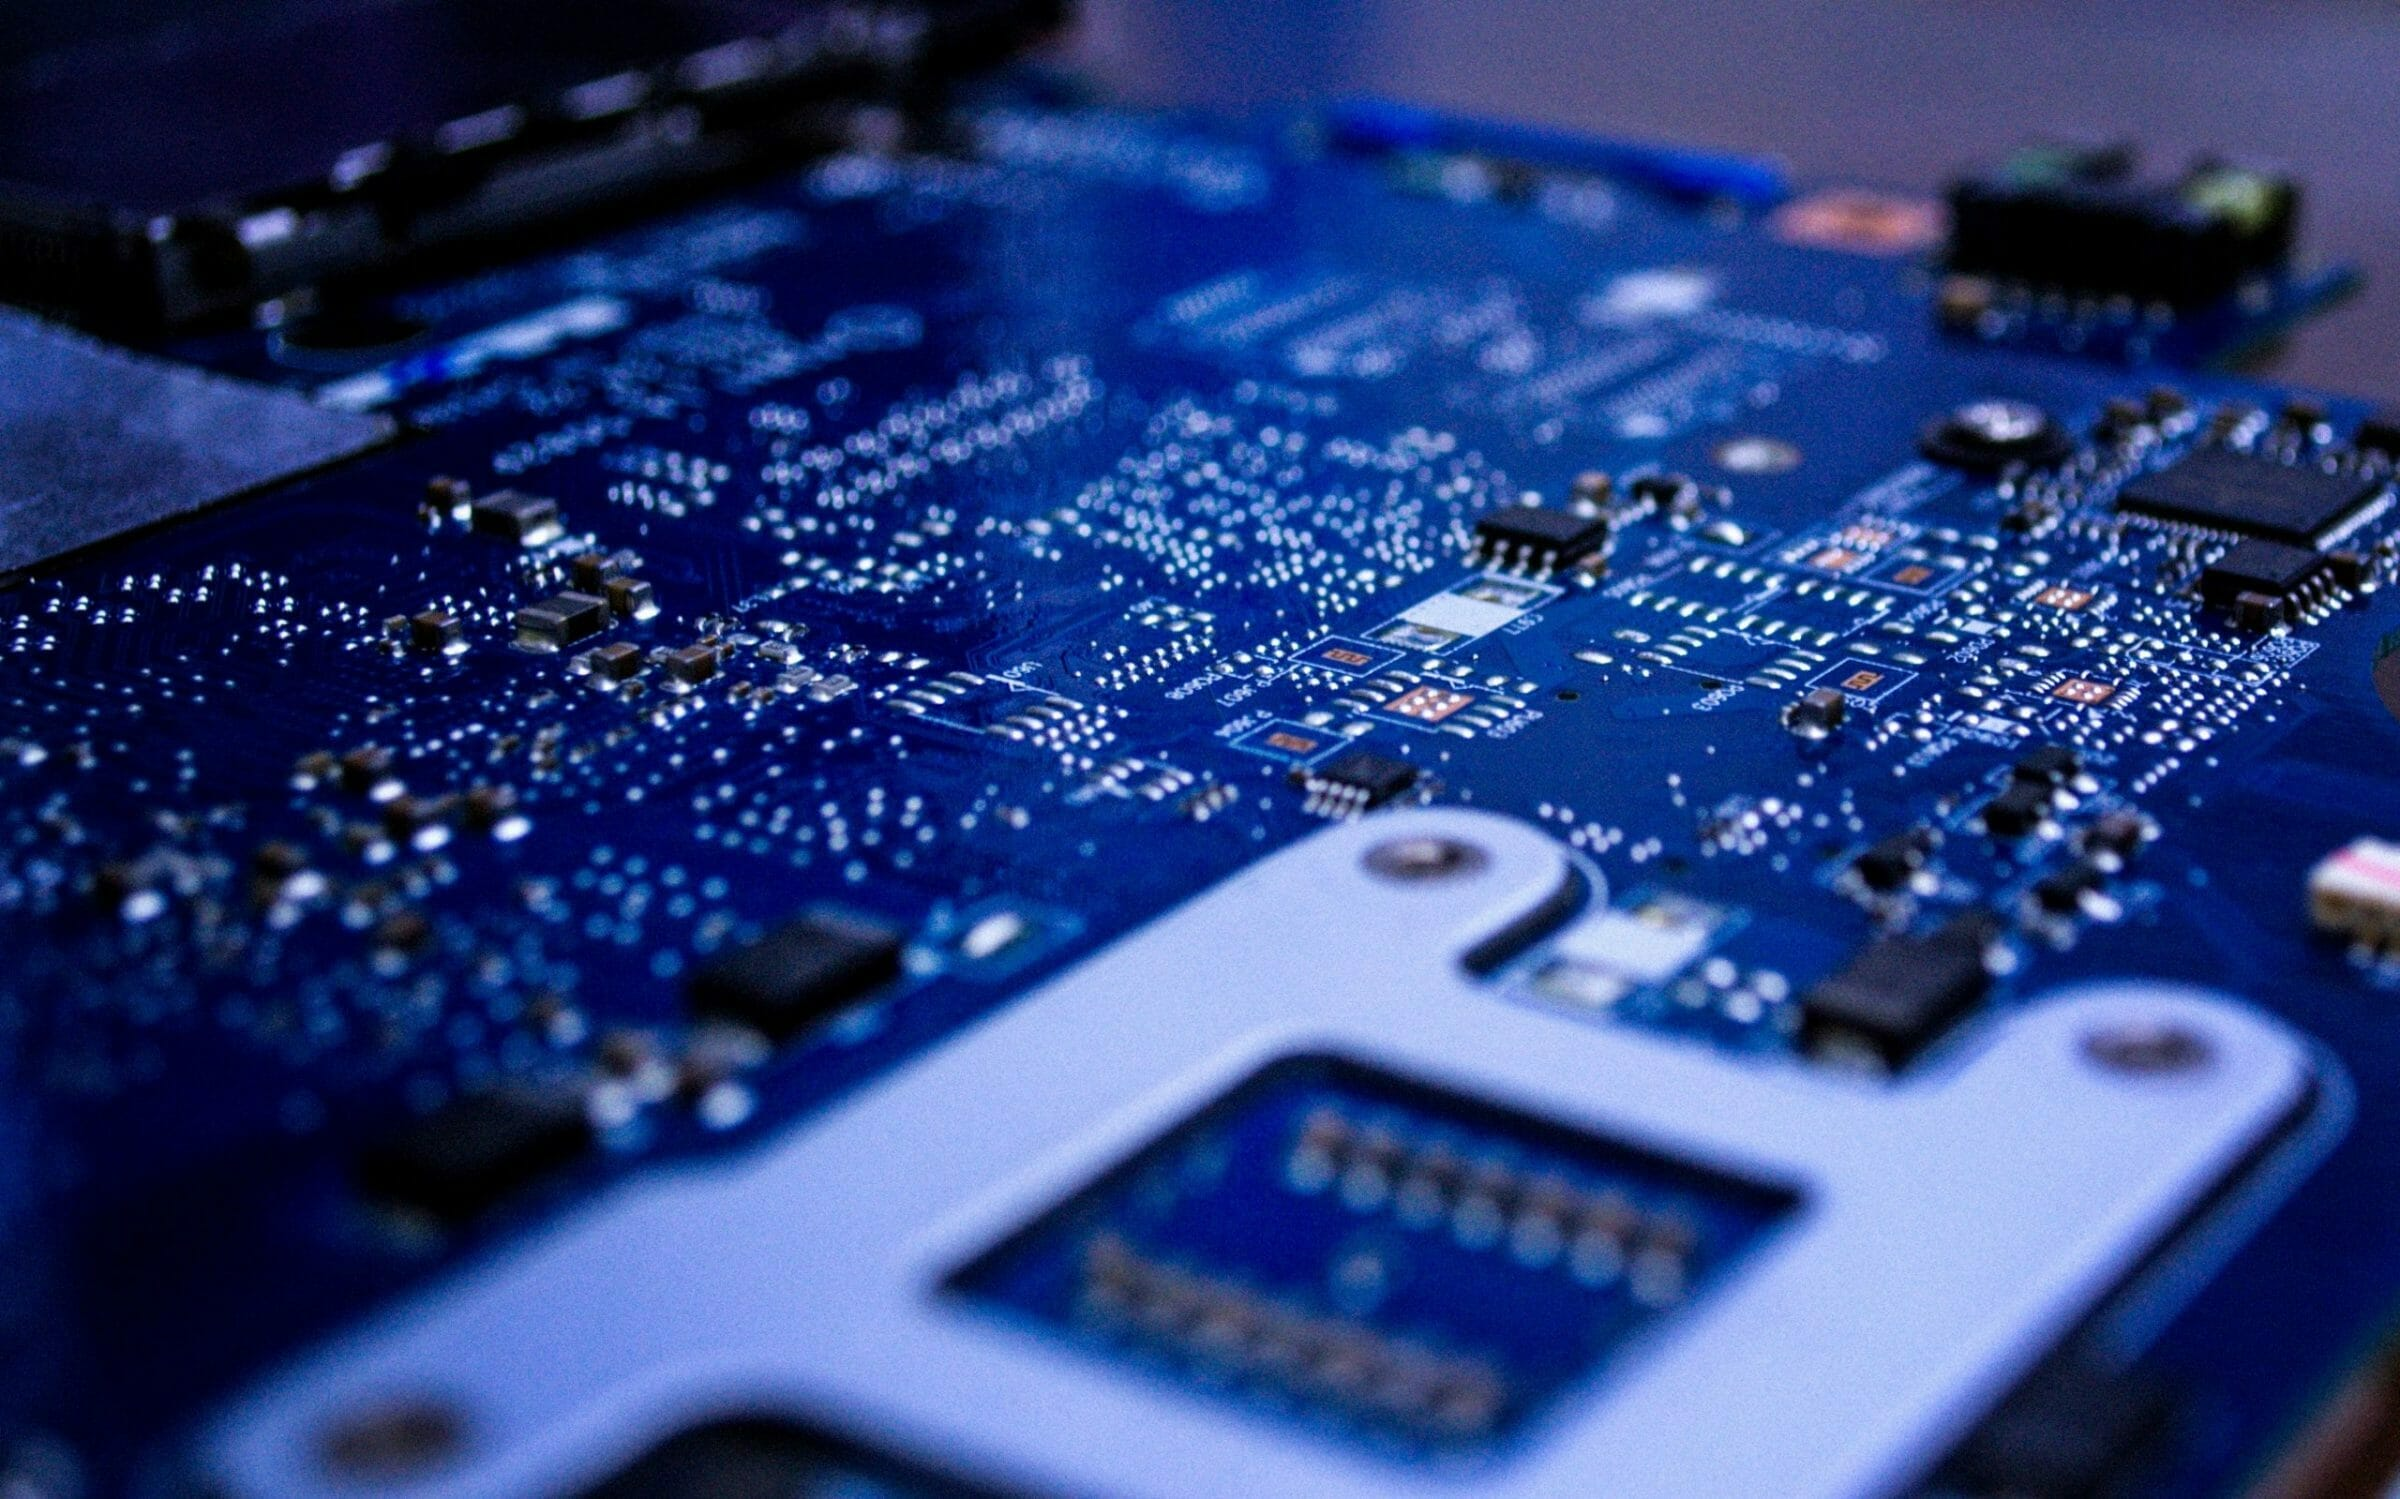 Motherboard, electronic approach circuits technology. Logic board